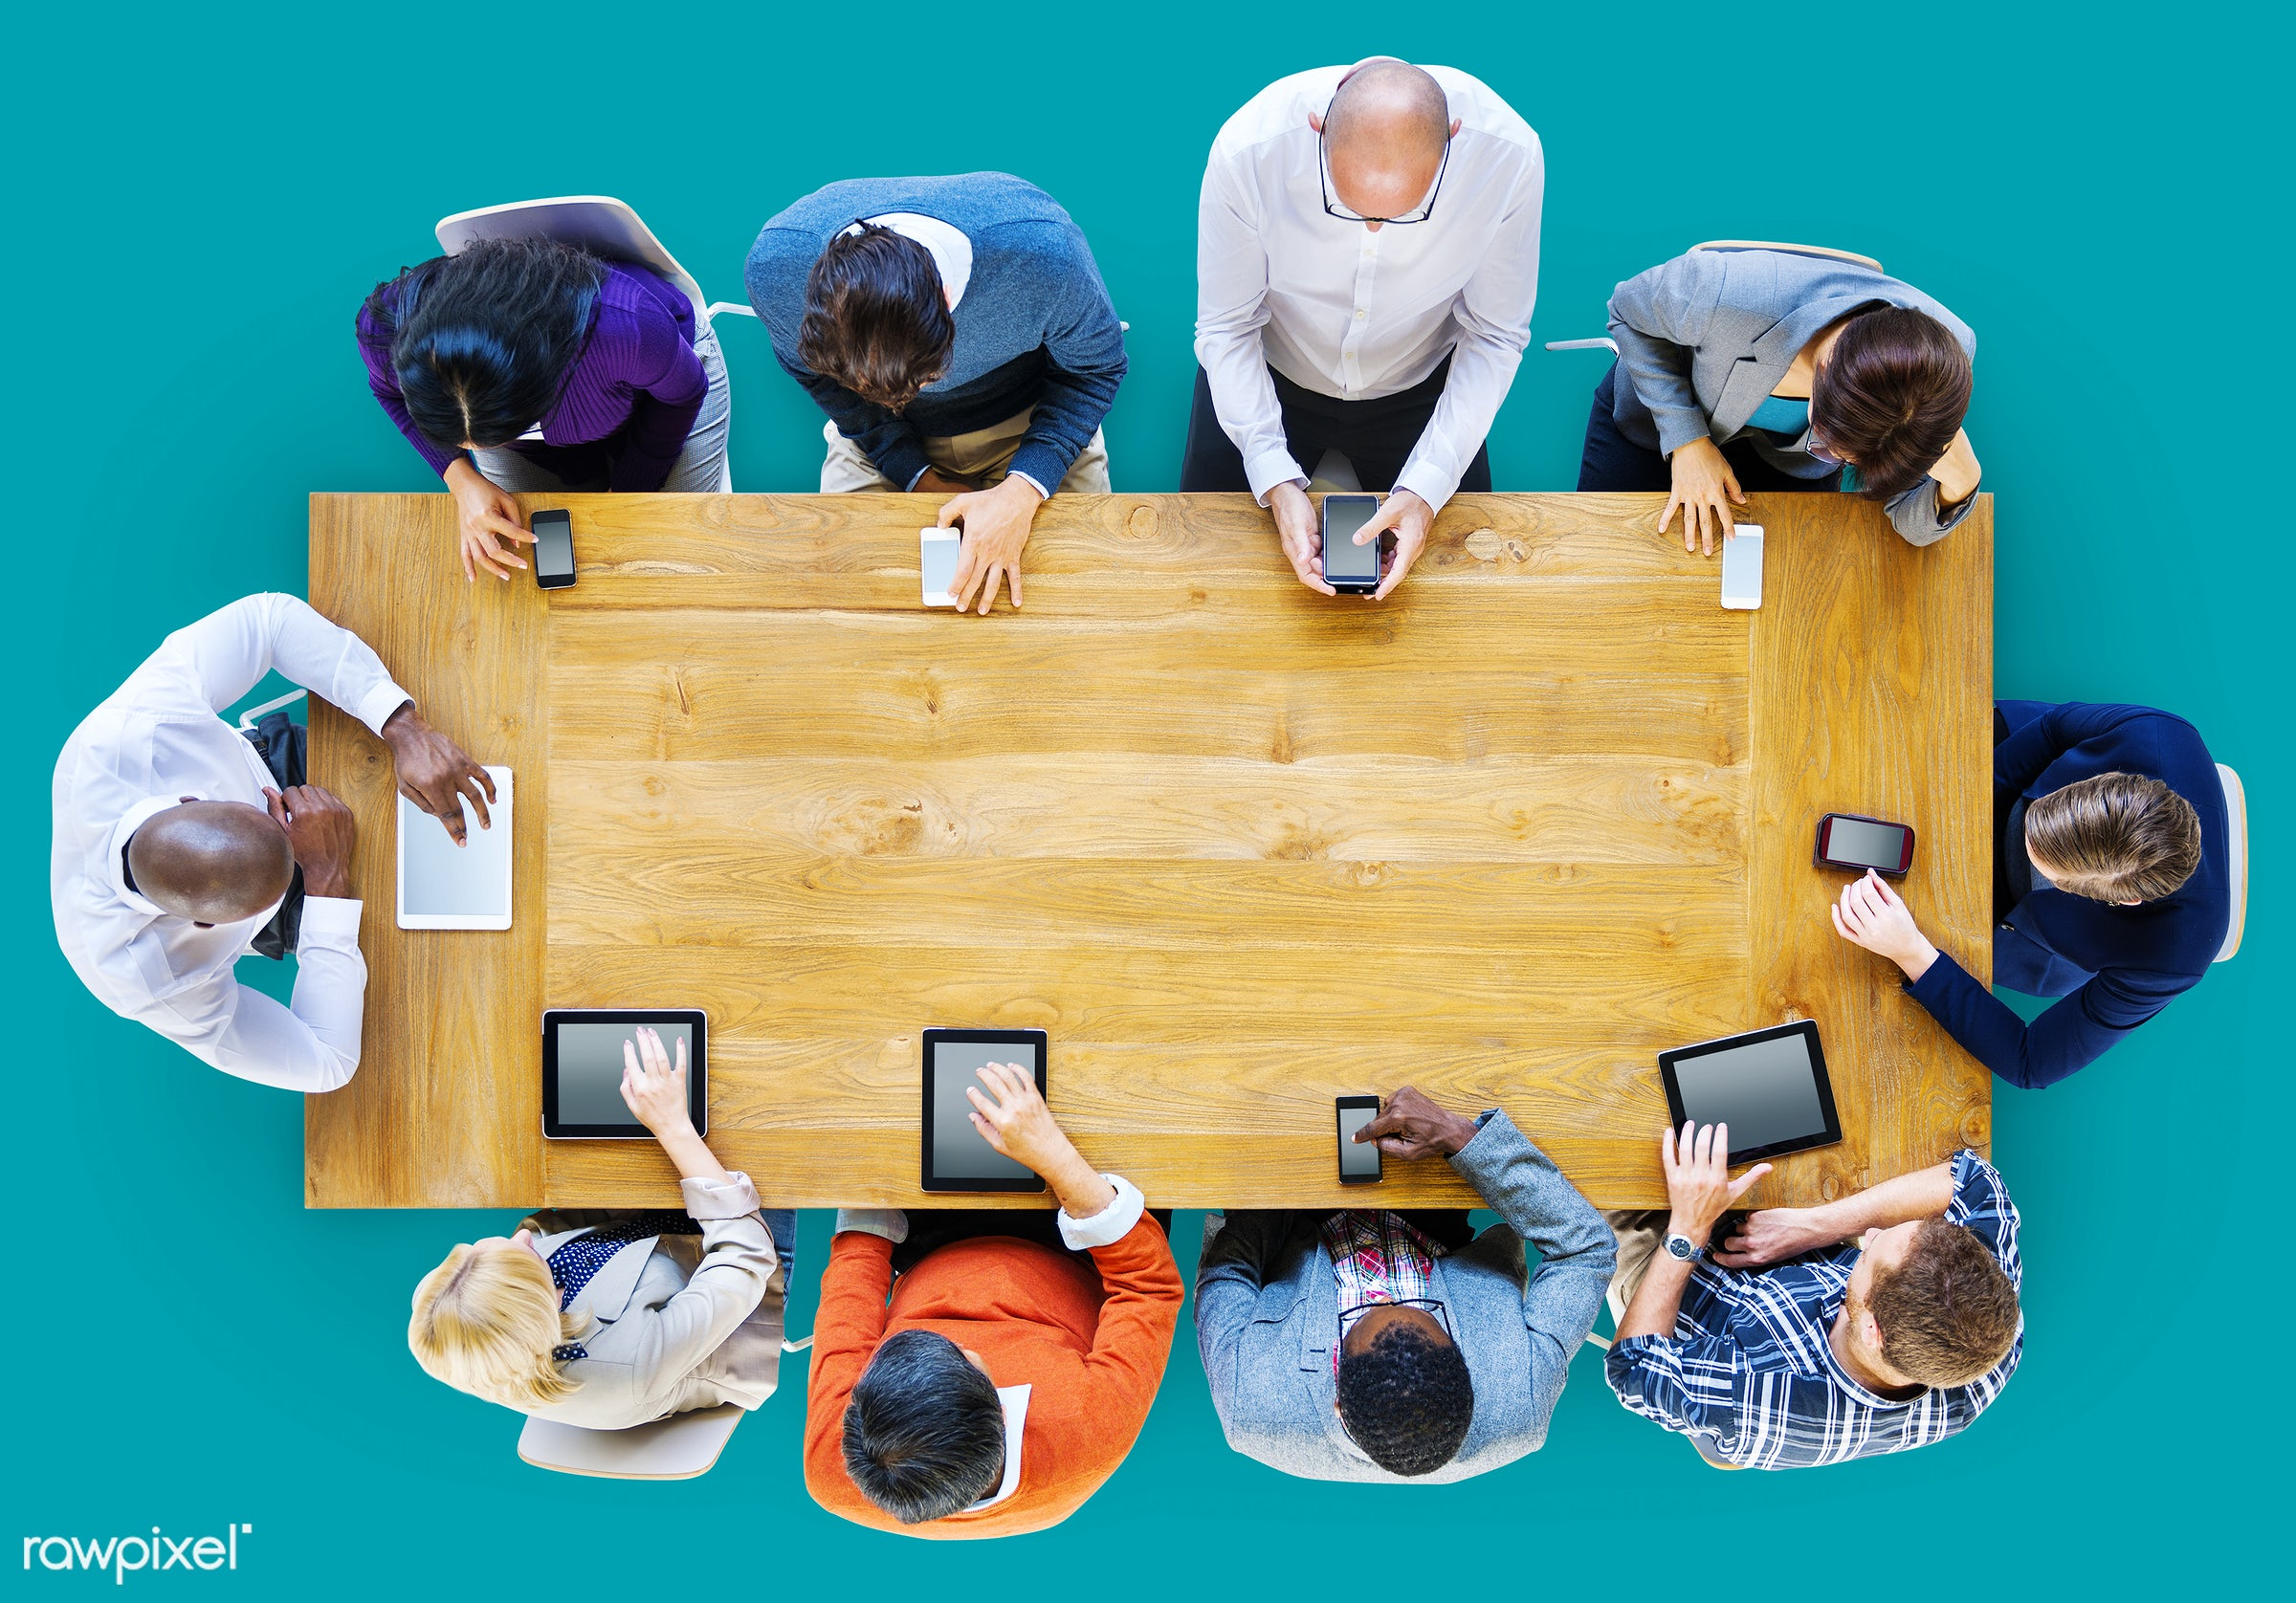 mobility, aerial view, brainstorming, business, business people, casual, communication, concrete floor, digital, digital...